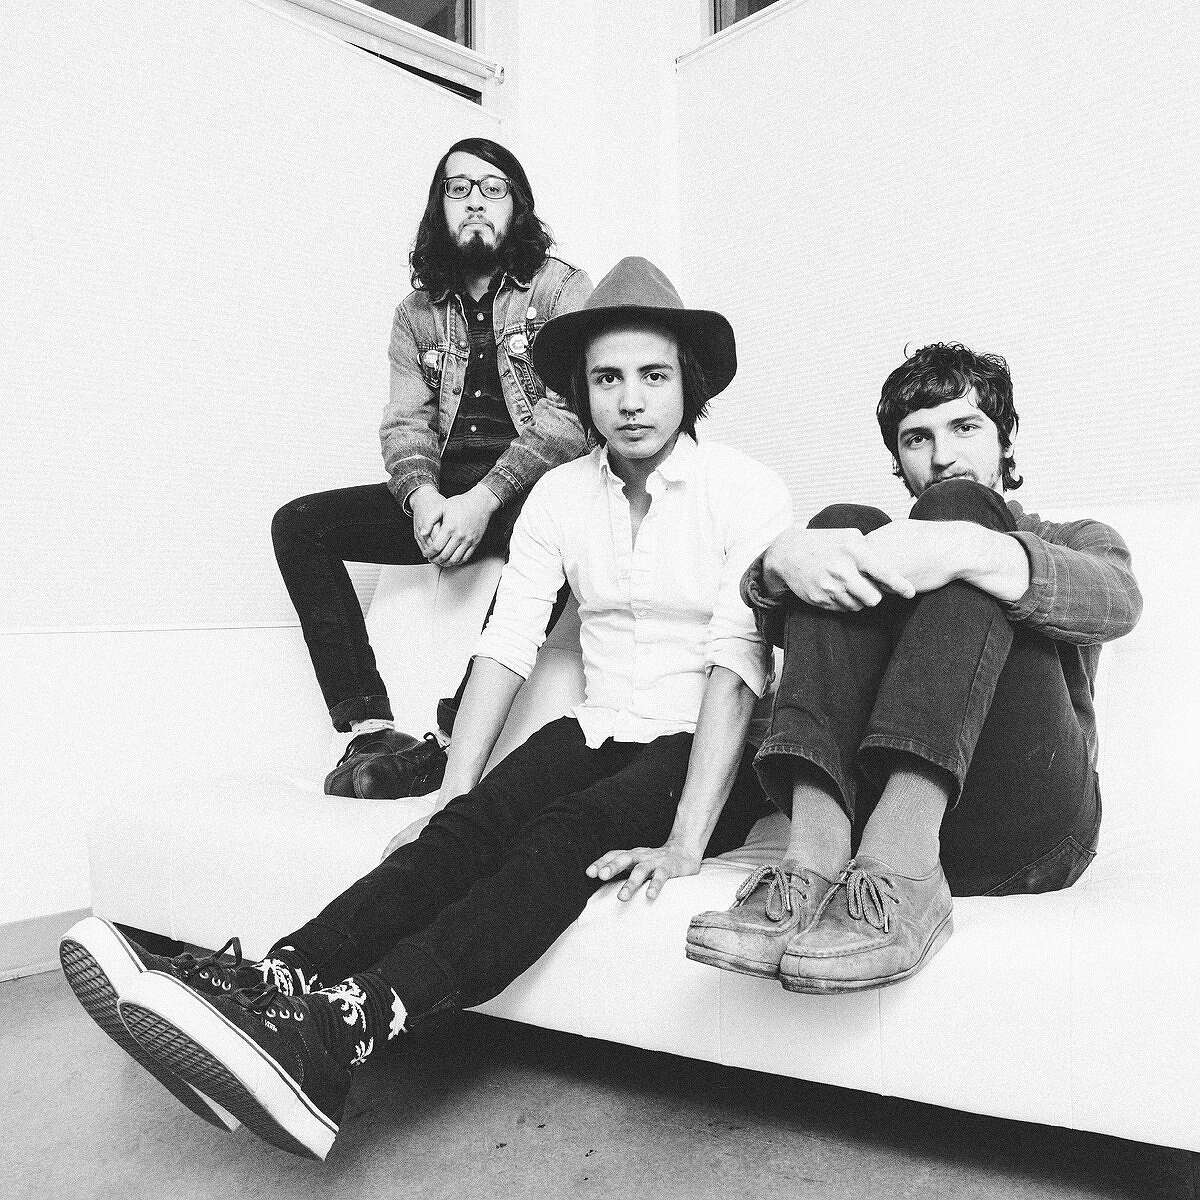 San Antonio band the Rich Hands will be playing South by Southwest.